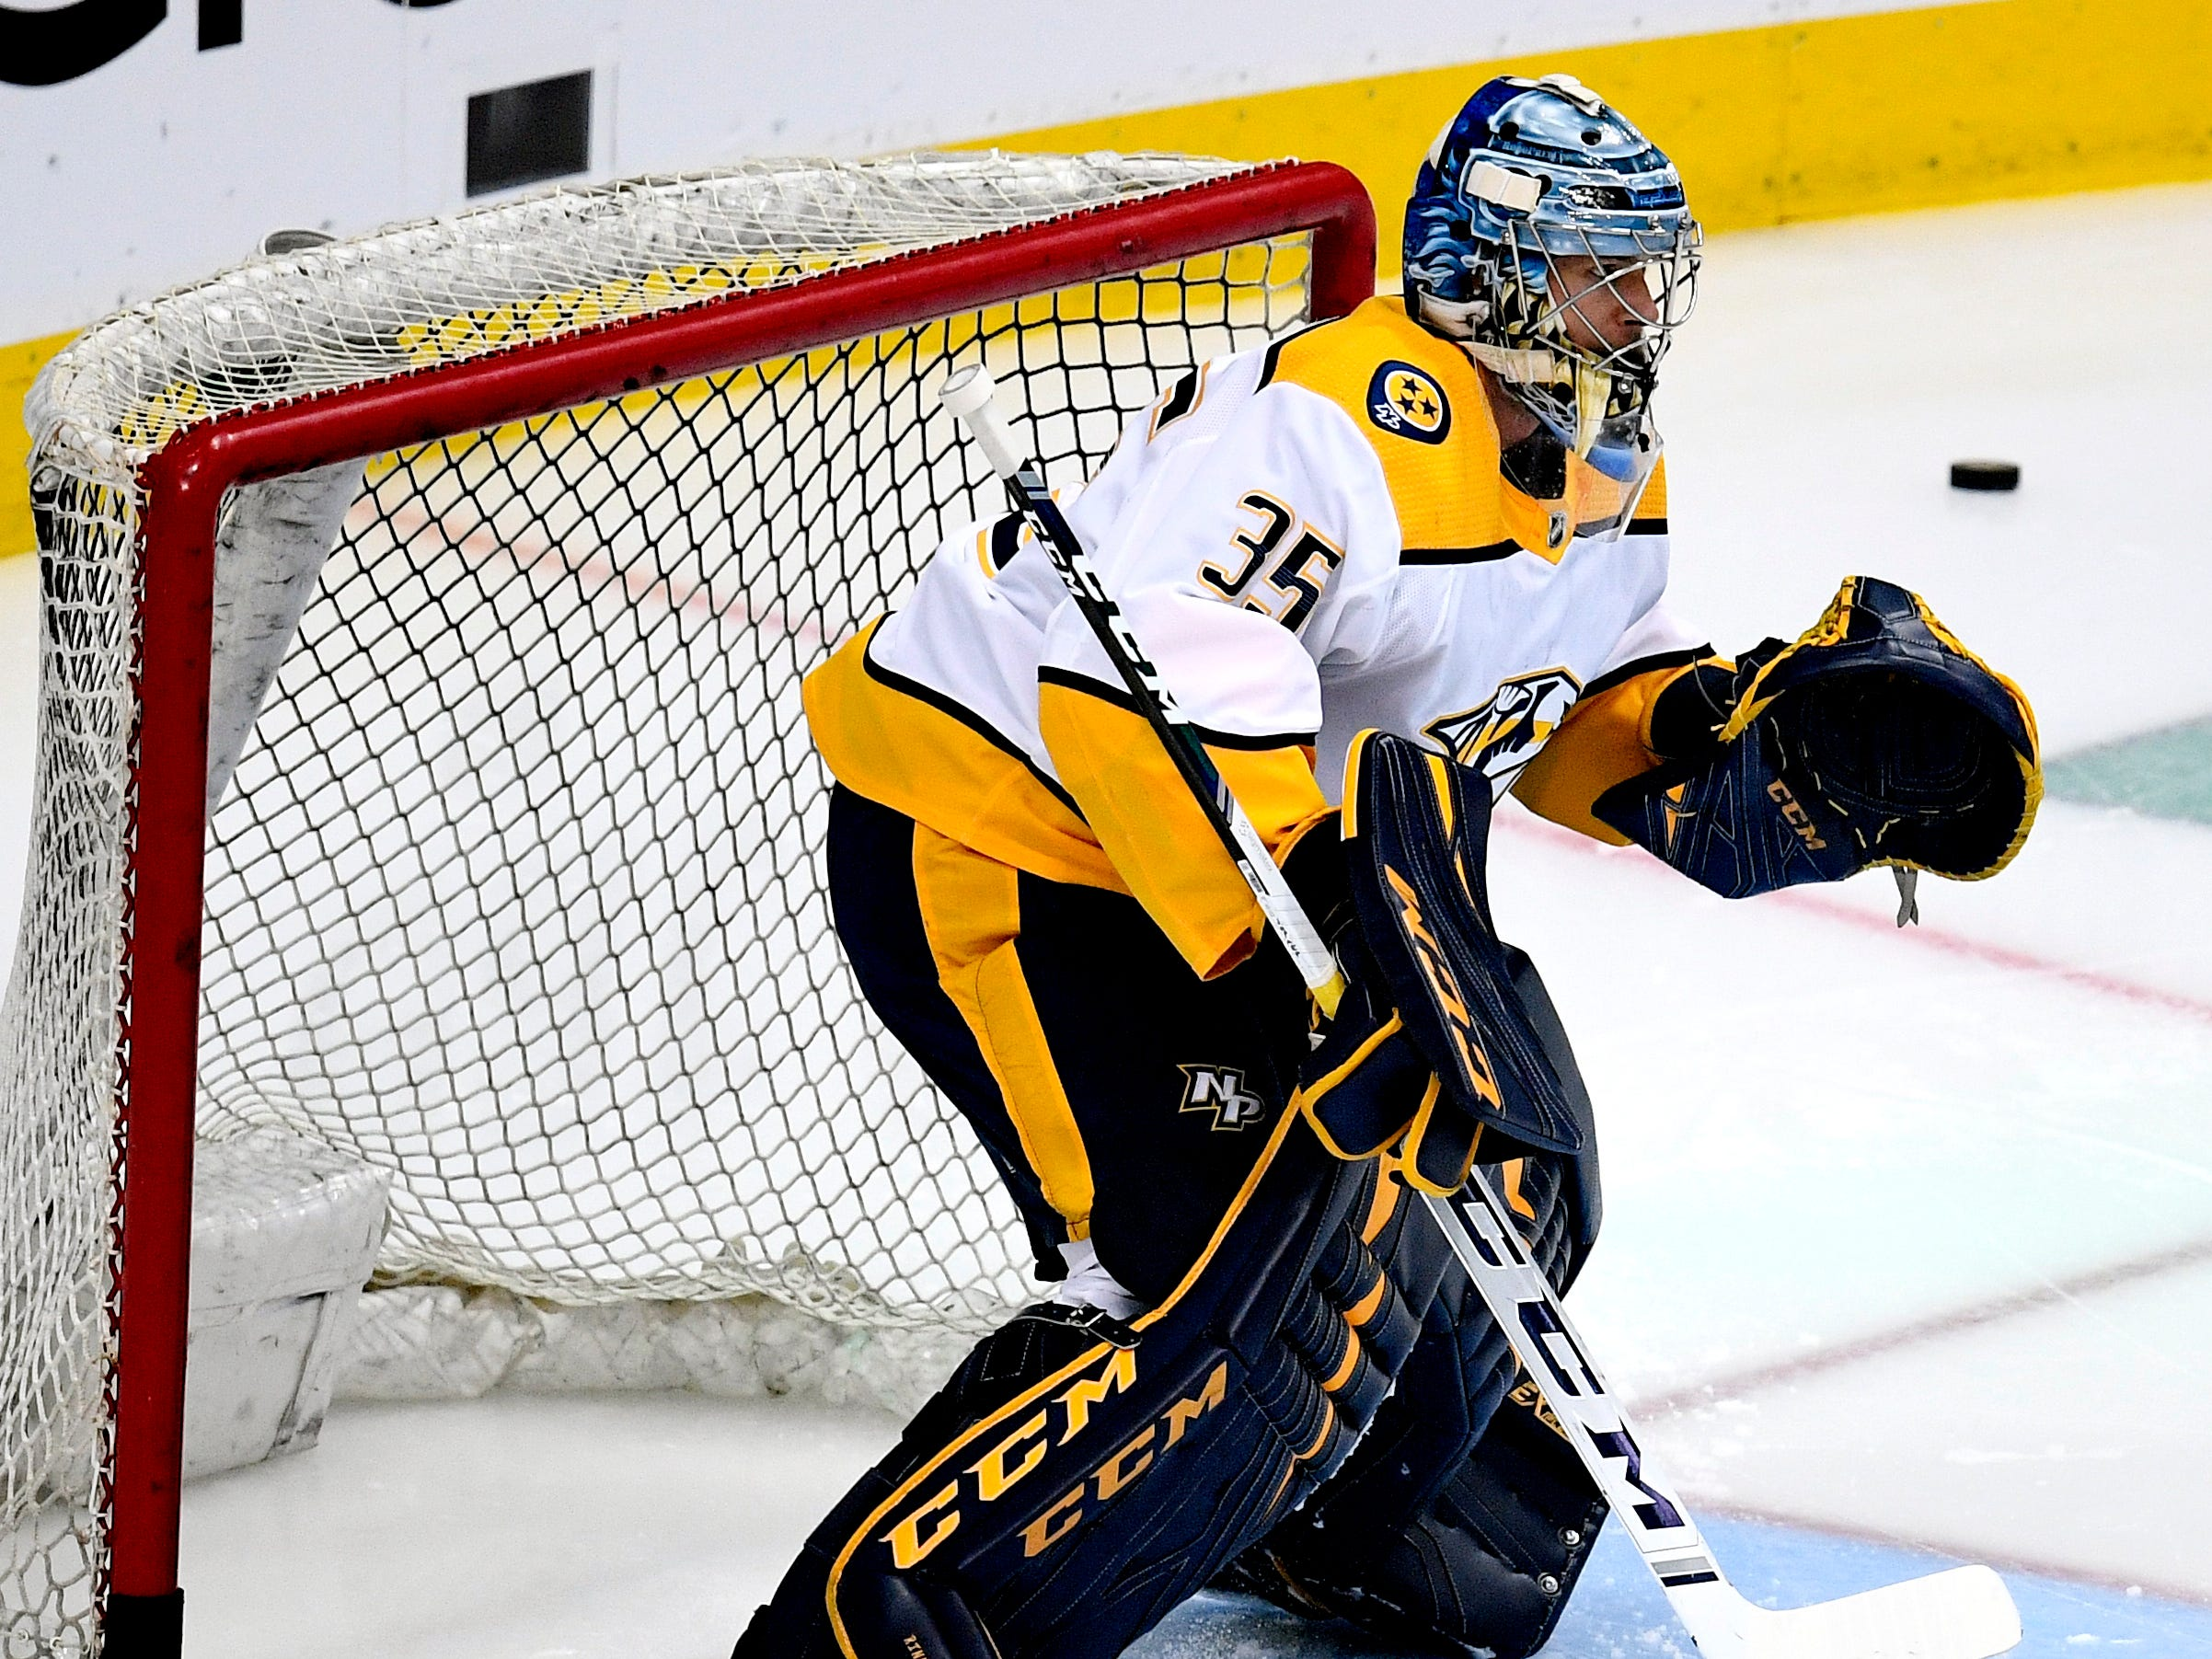 Nashville Predators goaltender Pekka Rinne (35) warms up before the divisional semifinal game against the Dallas Stars at the American Airlines Center in Dallas, Texas, Monday, April 22, 2019.